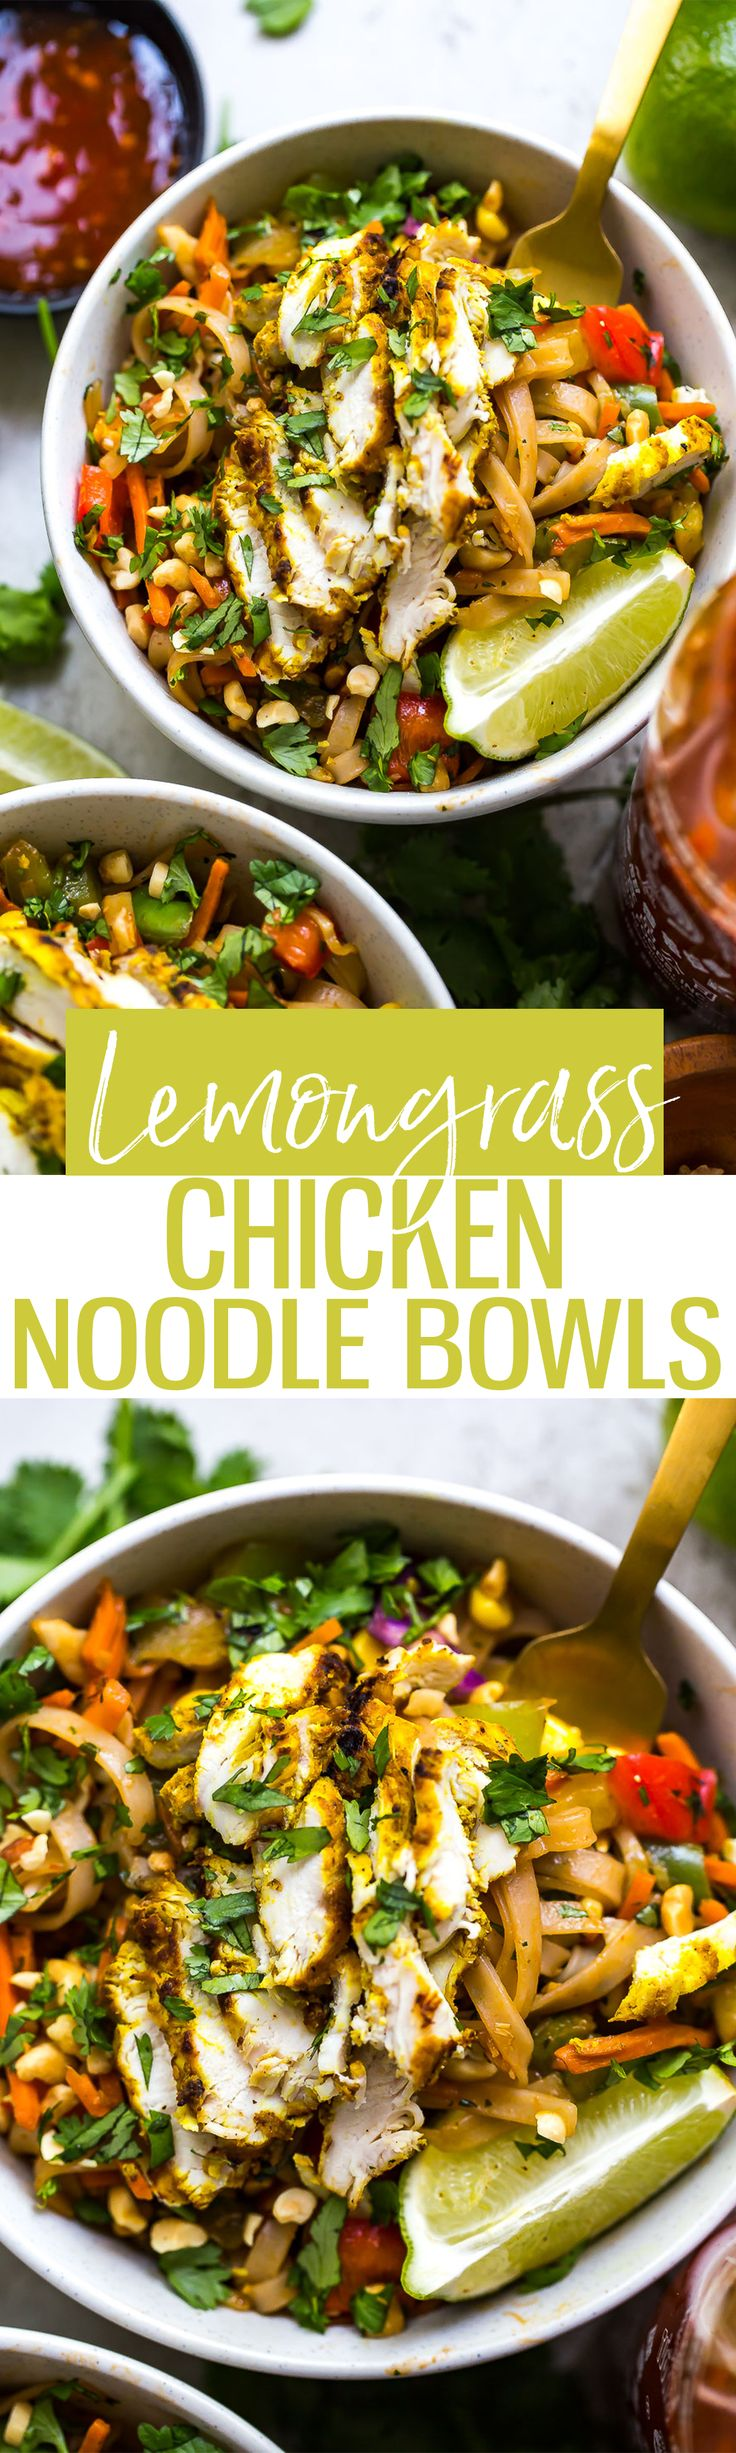 These Lemongrass Chicken Noodle Bowls are a delicious, gluten-free healthy lunch or dinner idea and made with rice noodles, grilled chicken and tons of veggies!